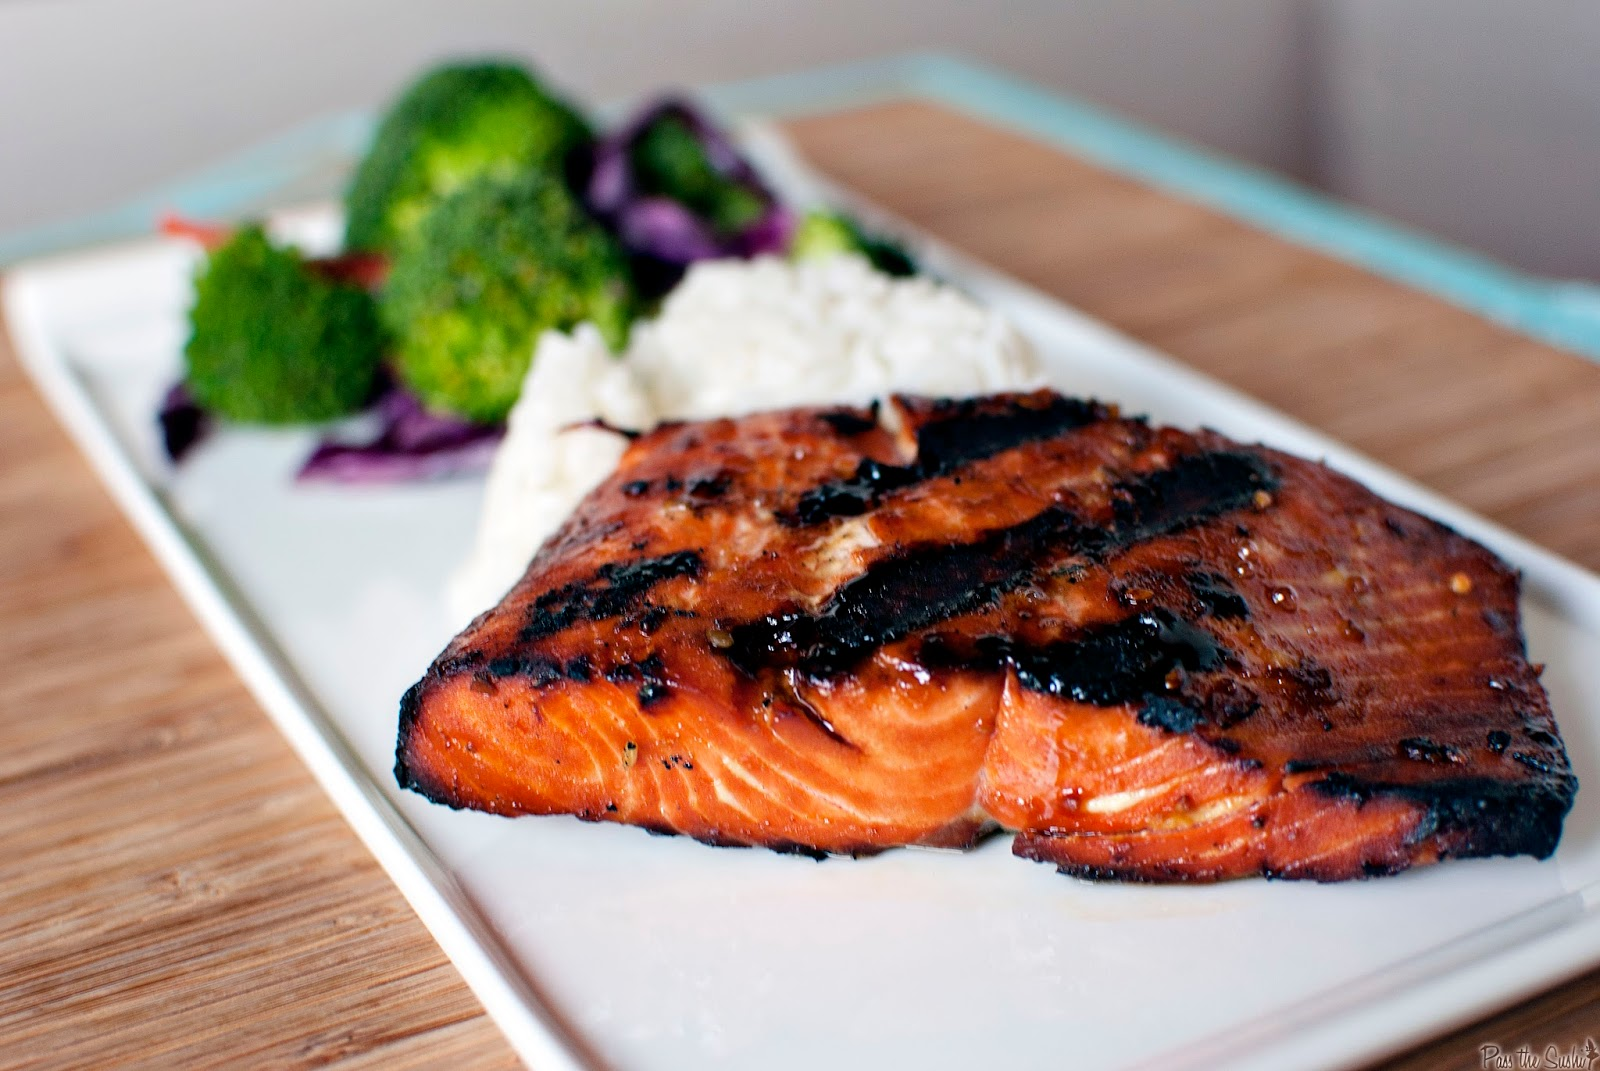 Grilled Salmon, Courgettes & Apricot Jam with Lemon Herb White Wine Sauce